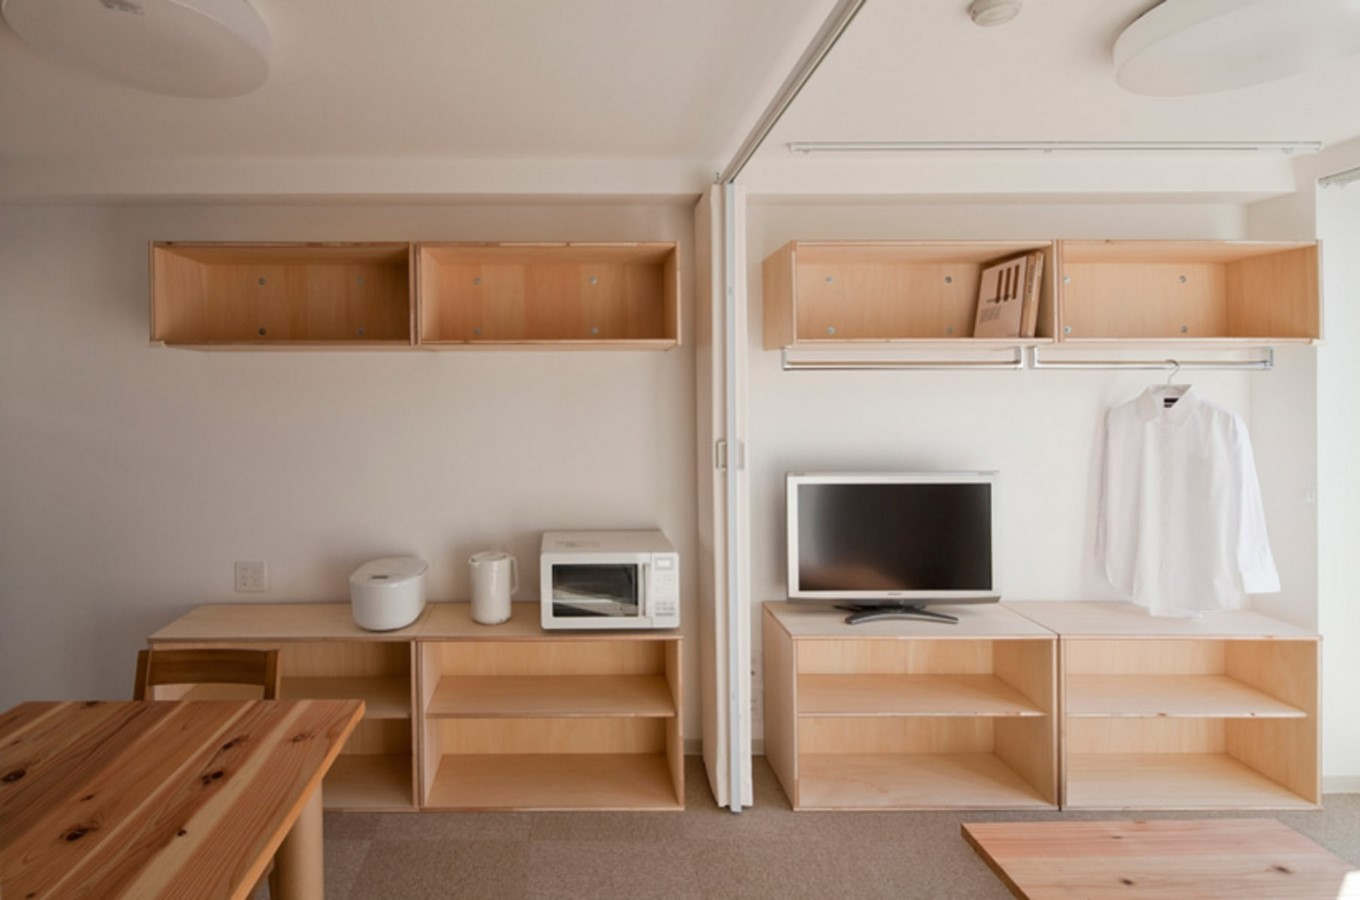 Onagawa Container by Shigeru Ban: Temporary Structures with Impactful Design Sheet6